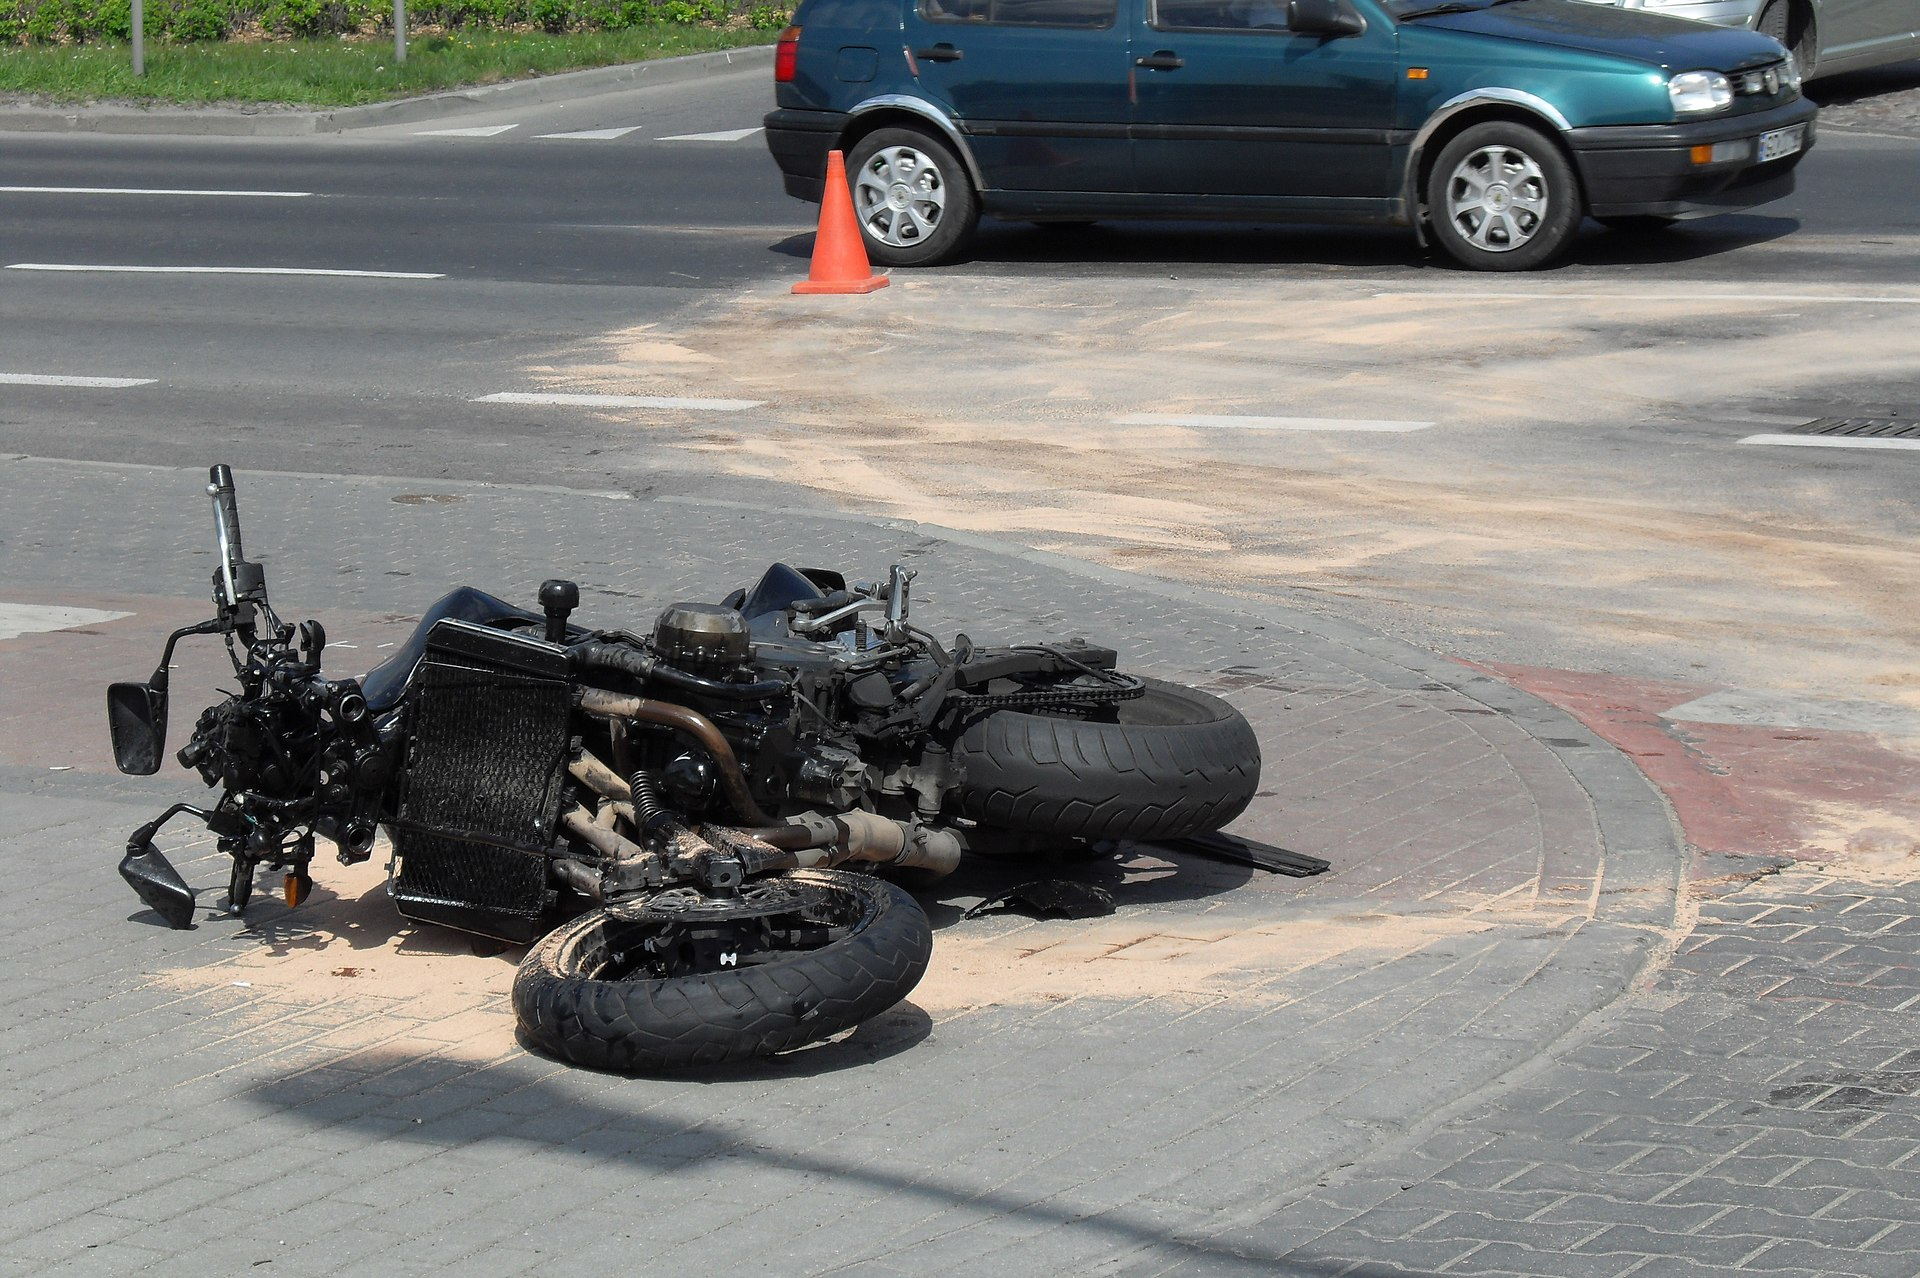 1920px-Crashed_motorcycle_in_Gda%C5%84sk